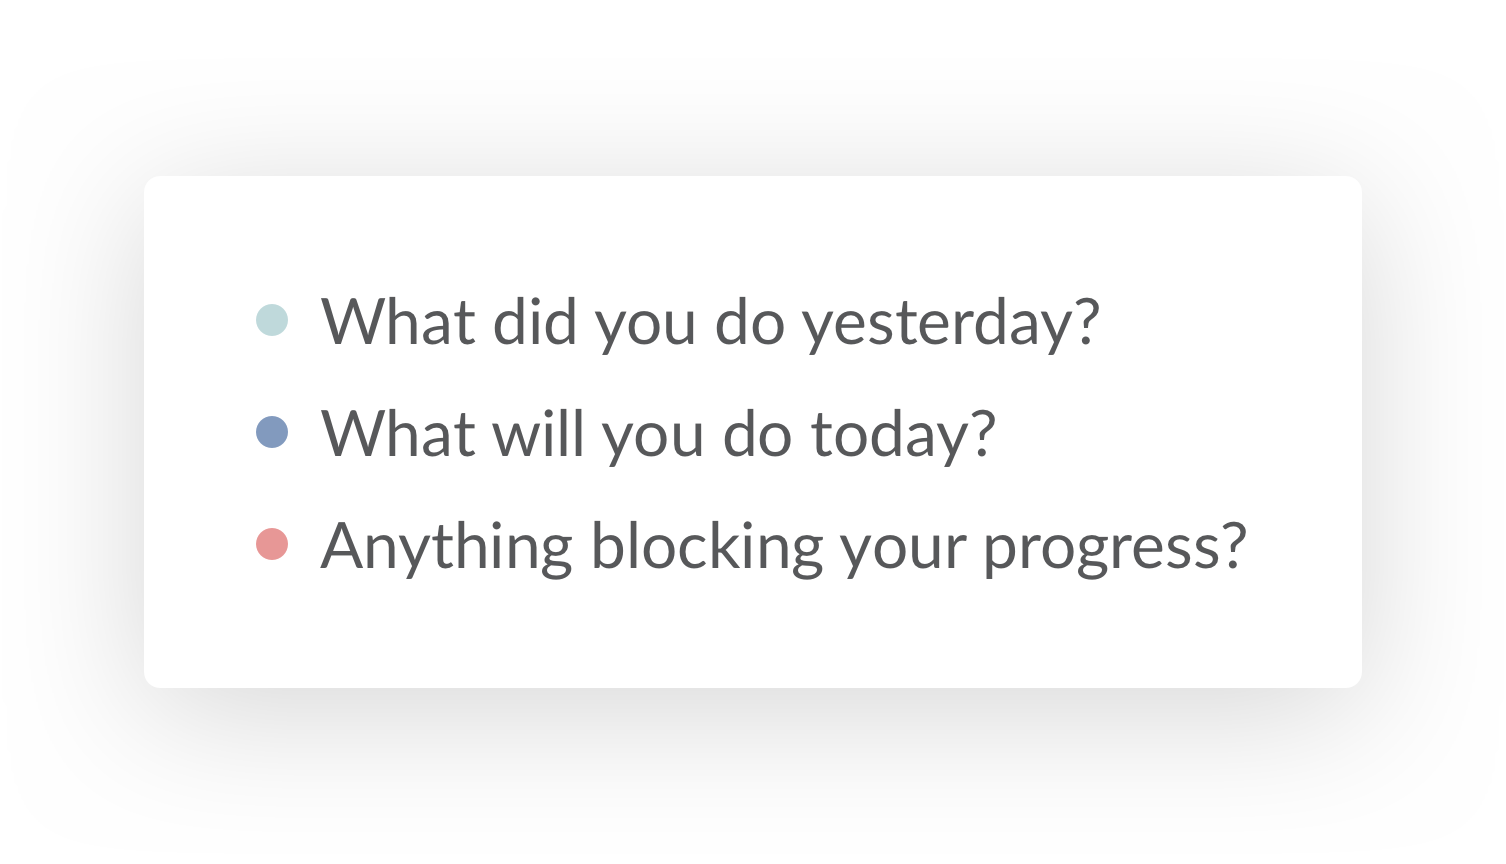 Daily standup default questions 3: What did you do yesterday? What will you do today? Anything blocking your progress?